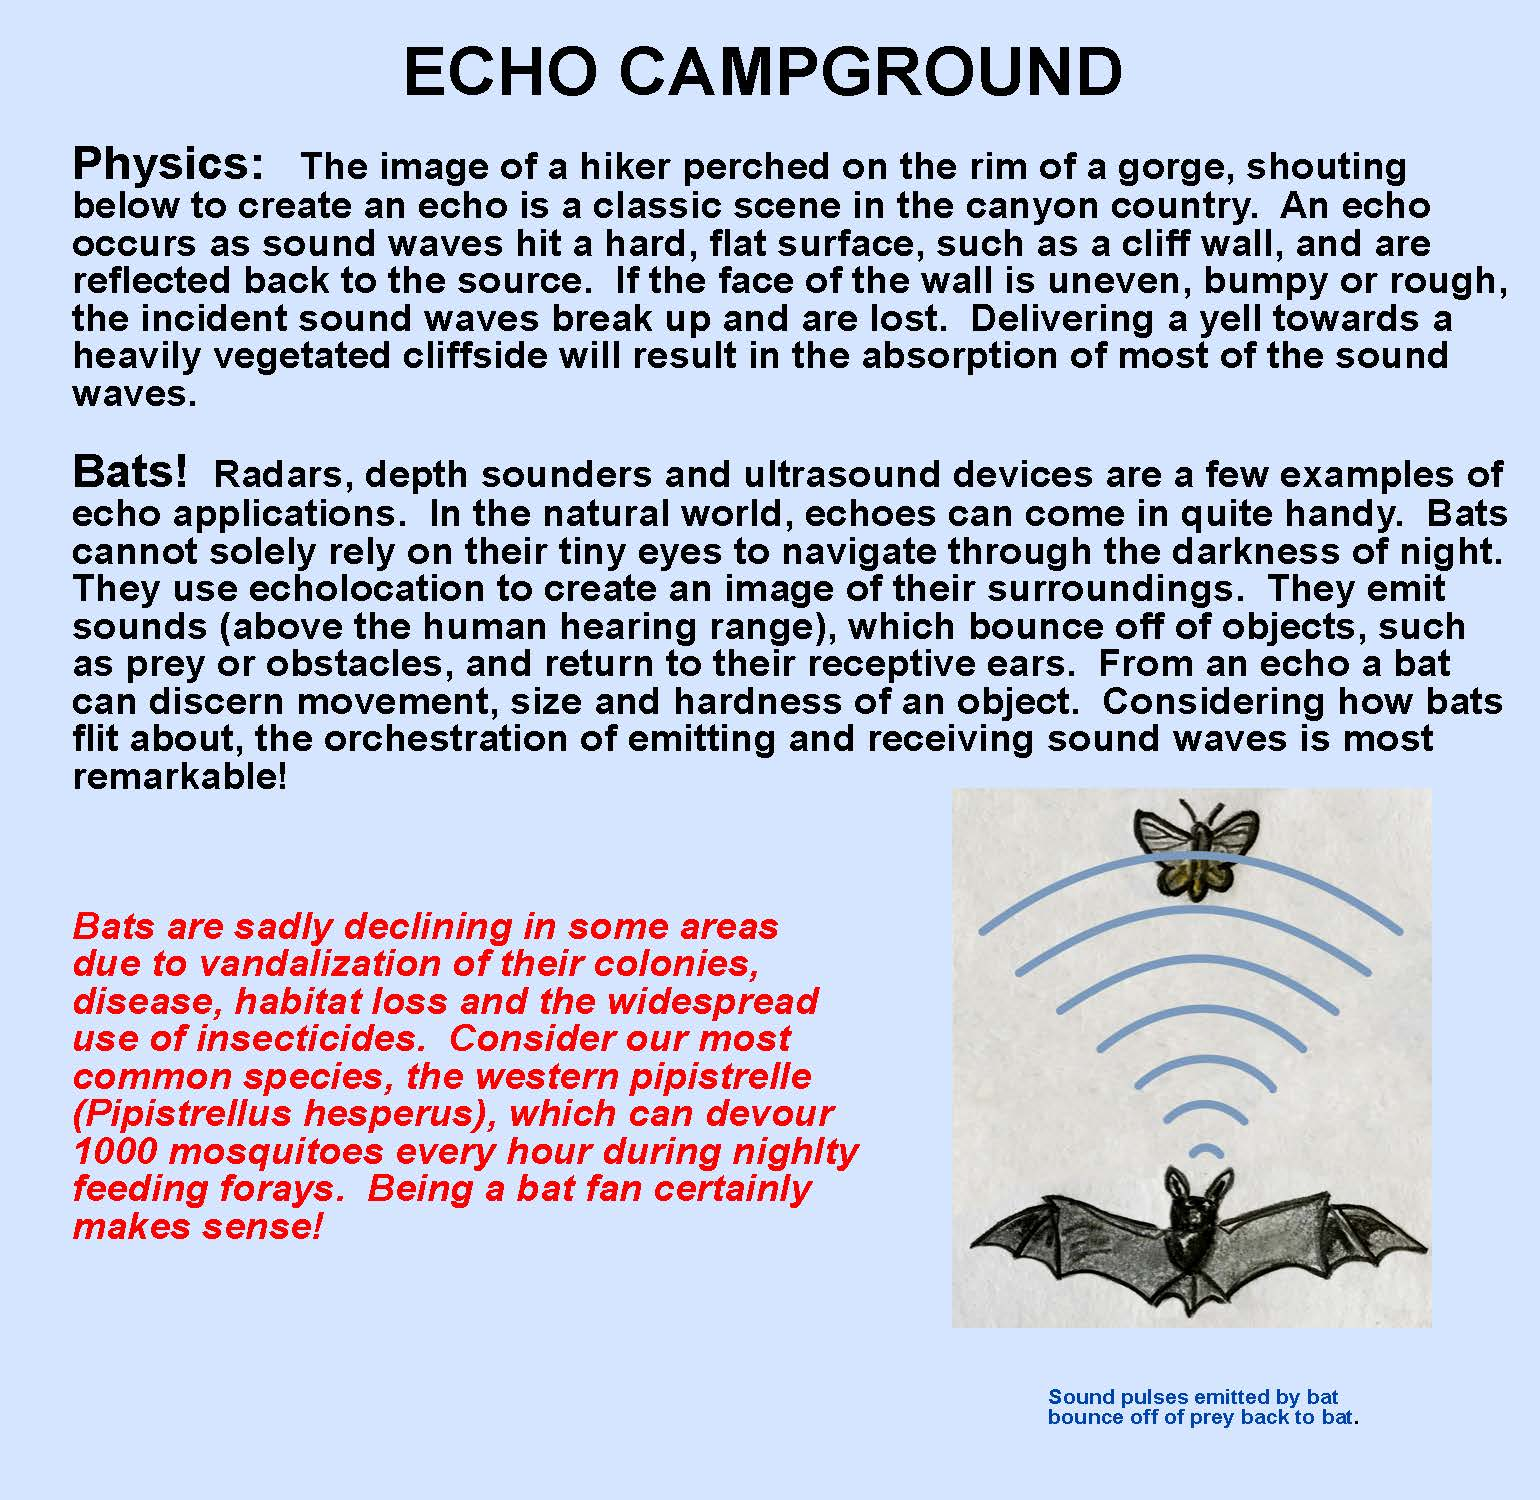 Echo Campground